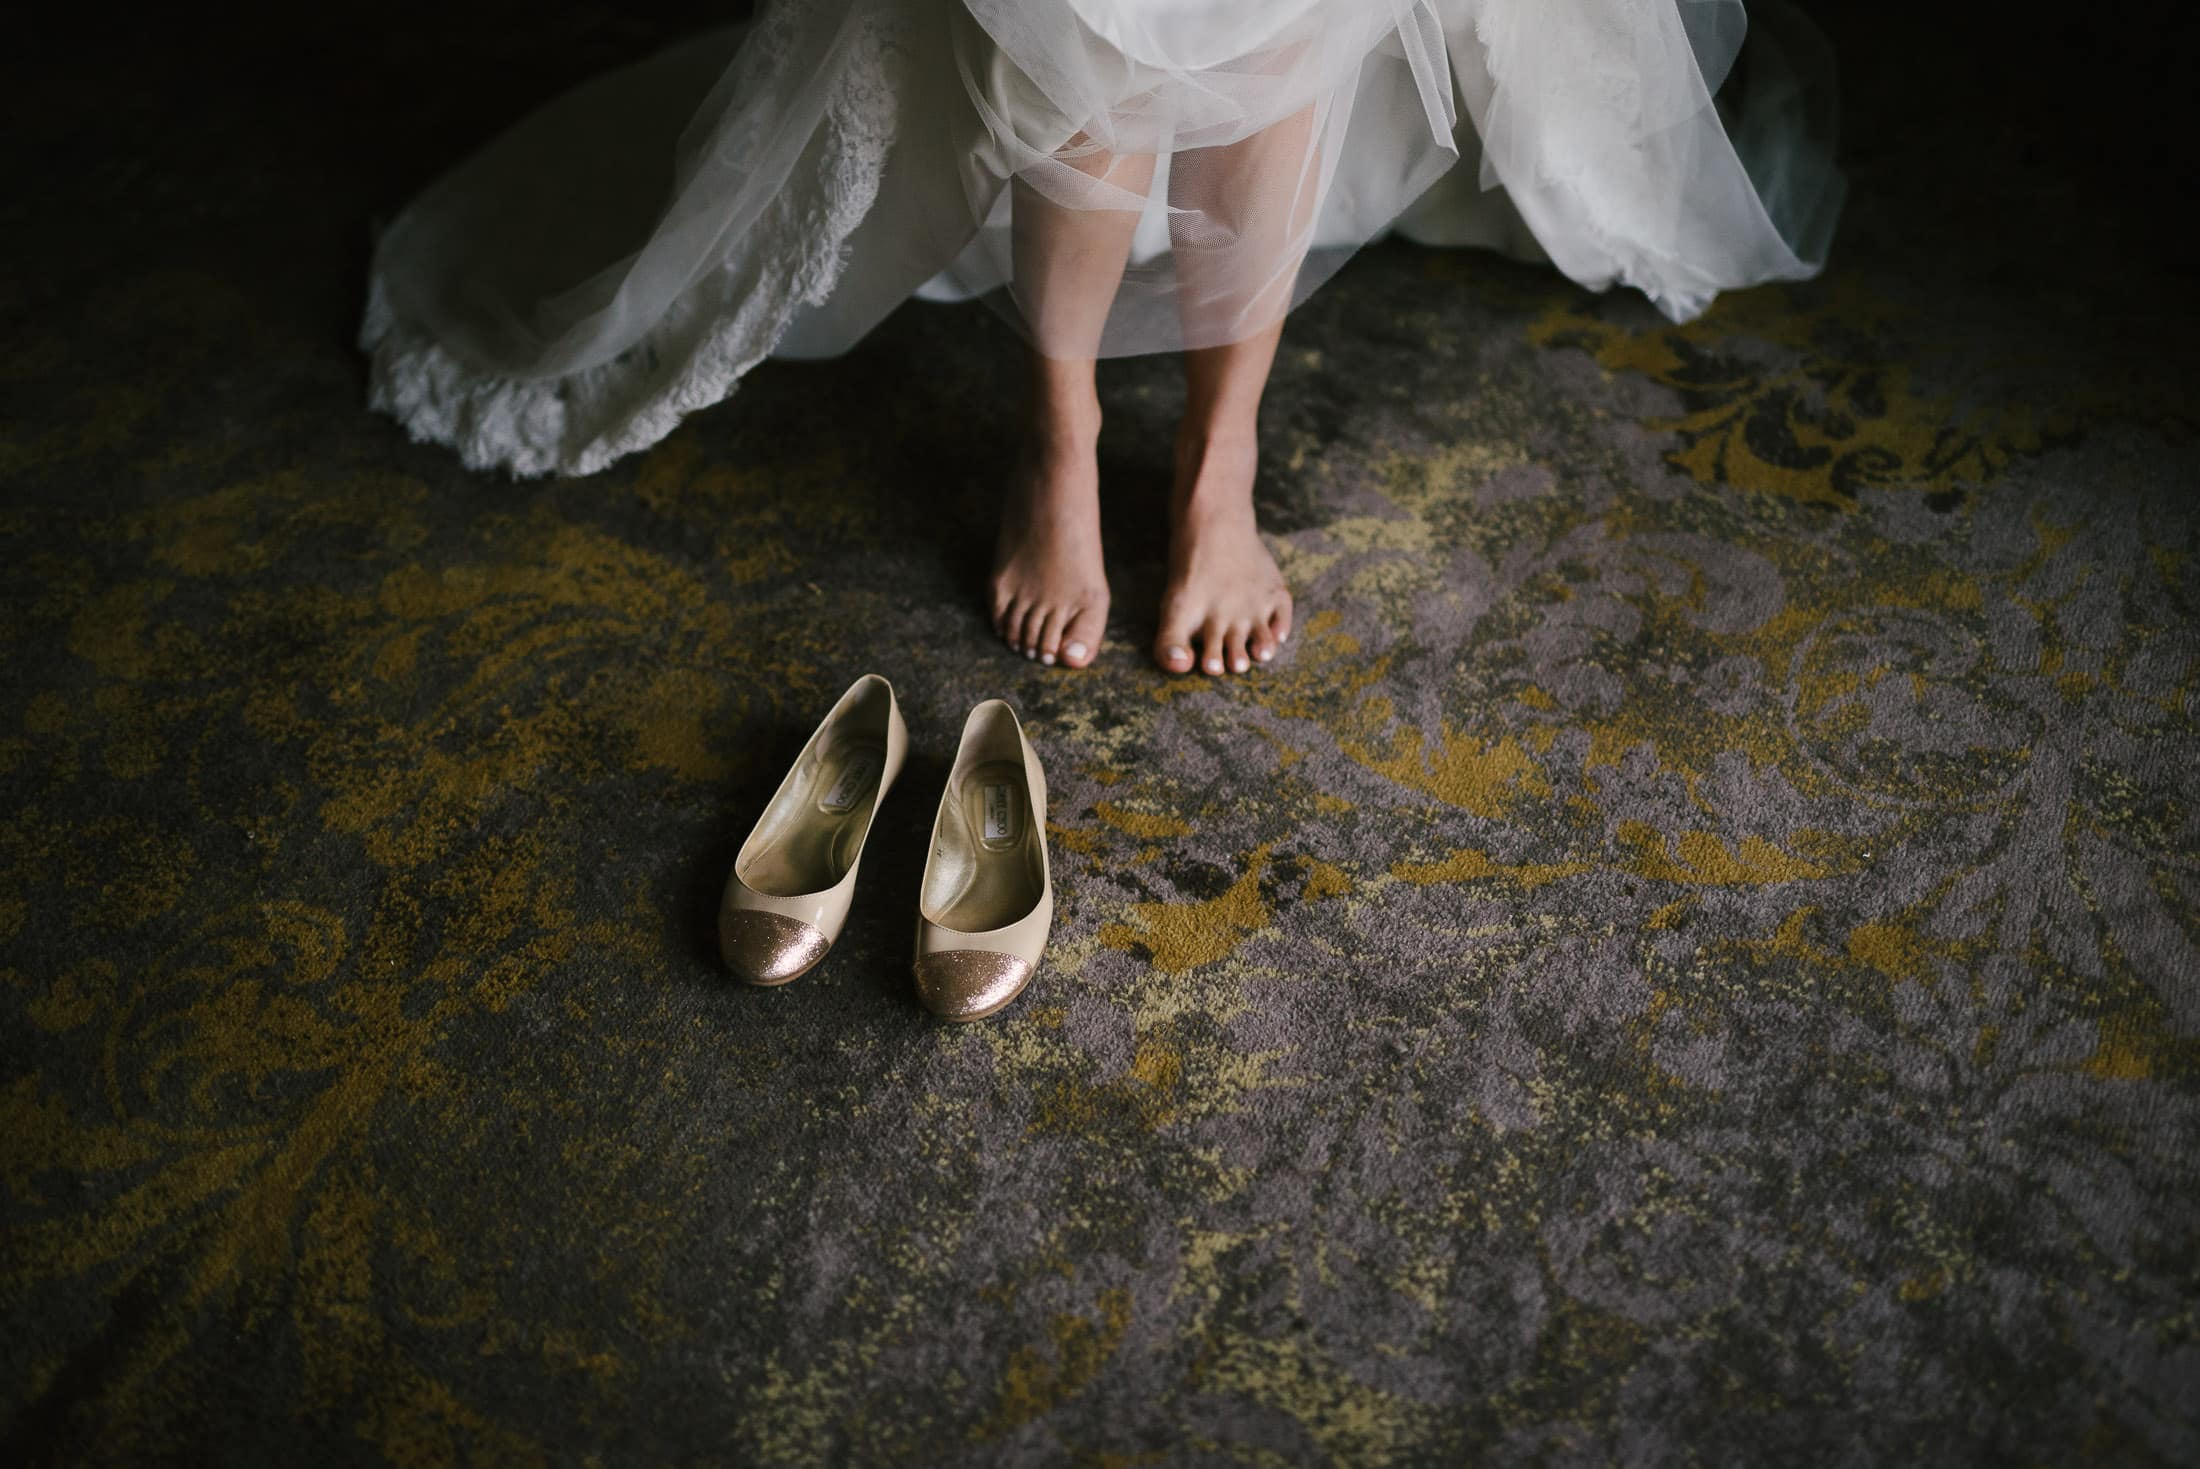 Feet and comfortable wedding shoes